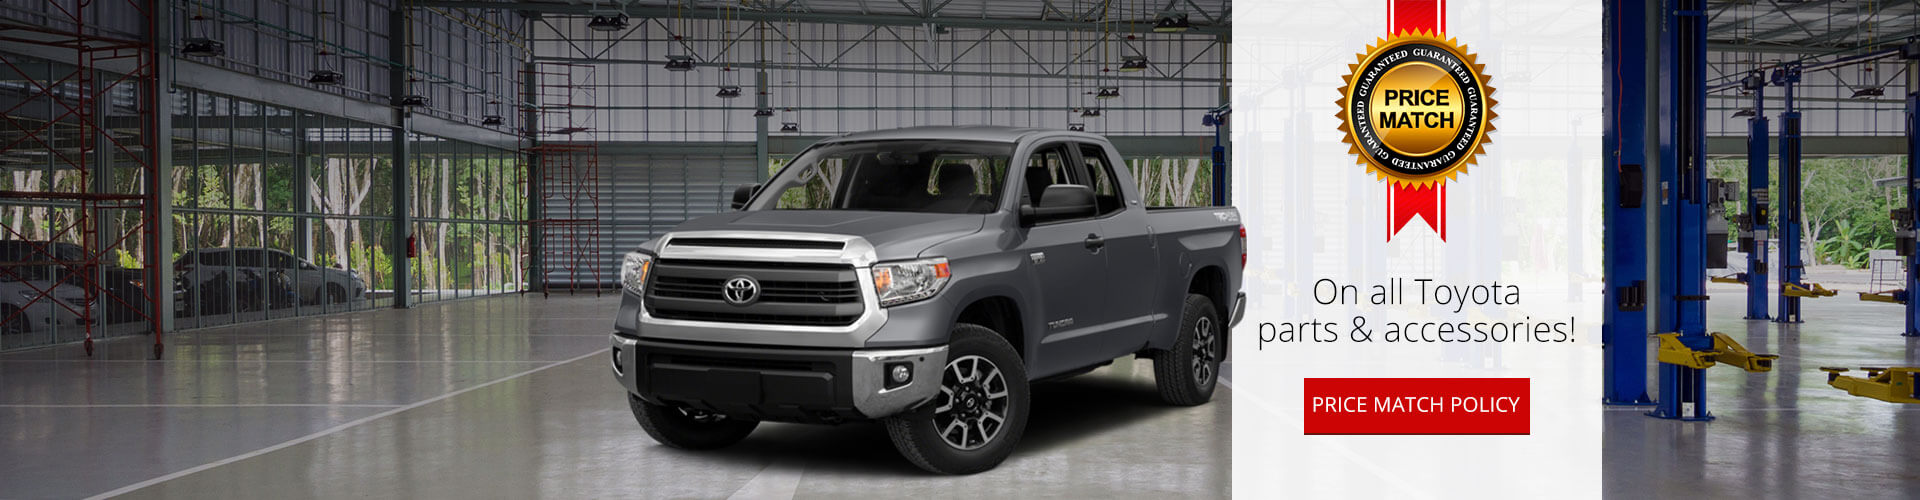 Toyota parts and accessories price match